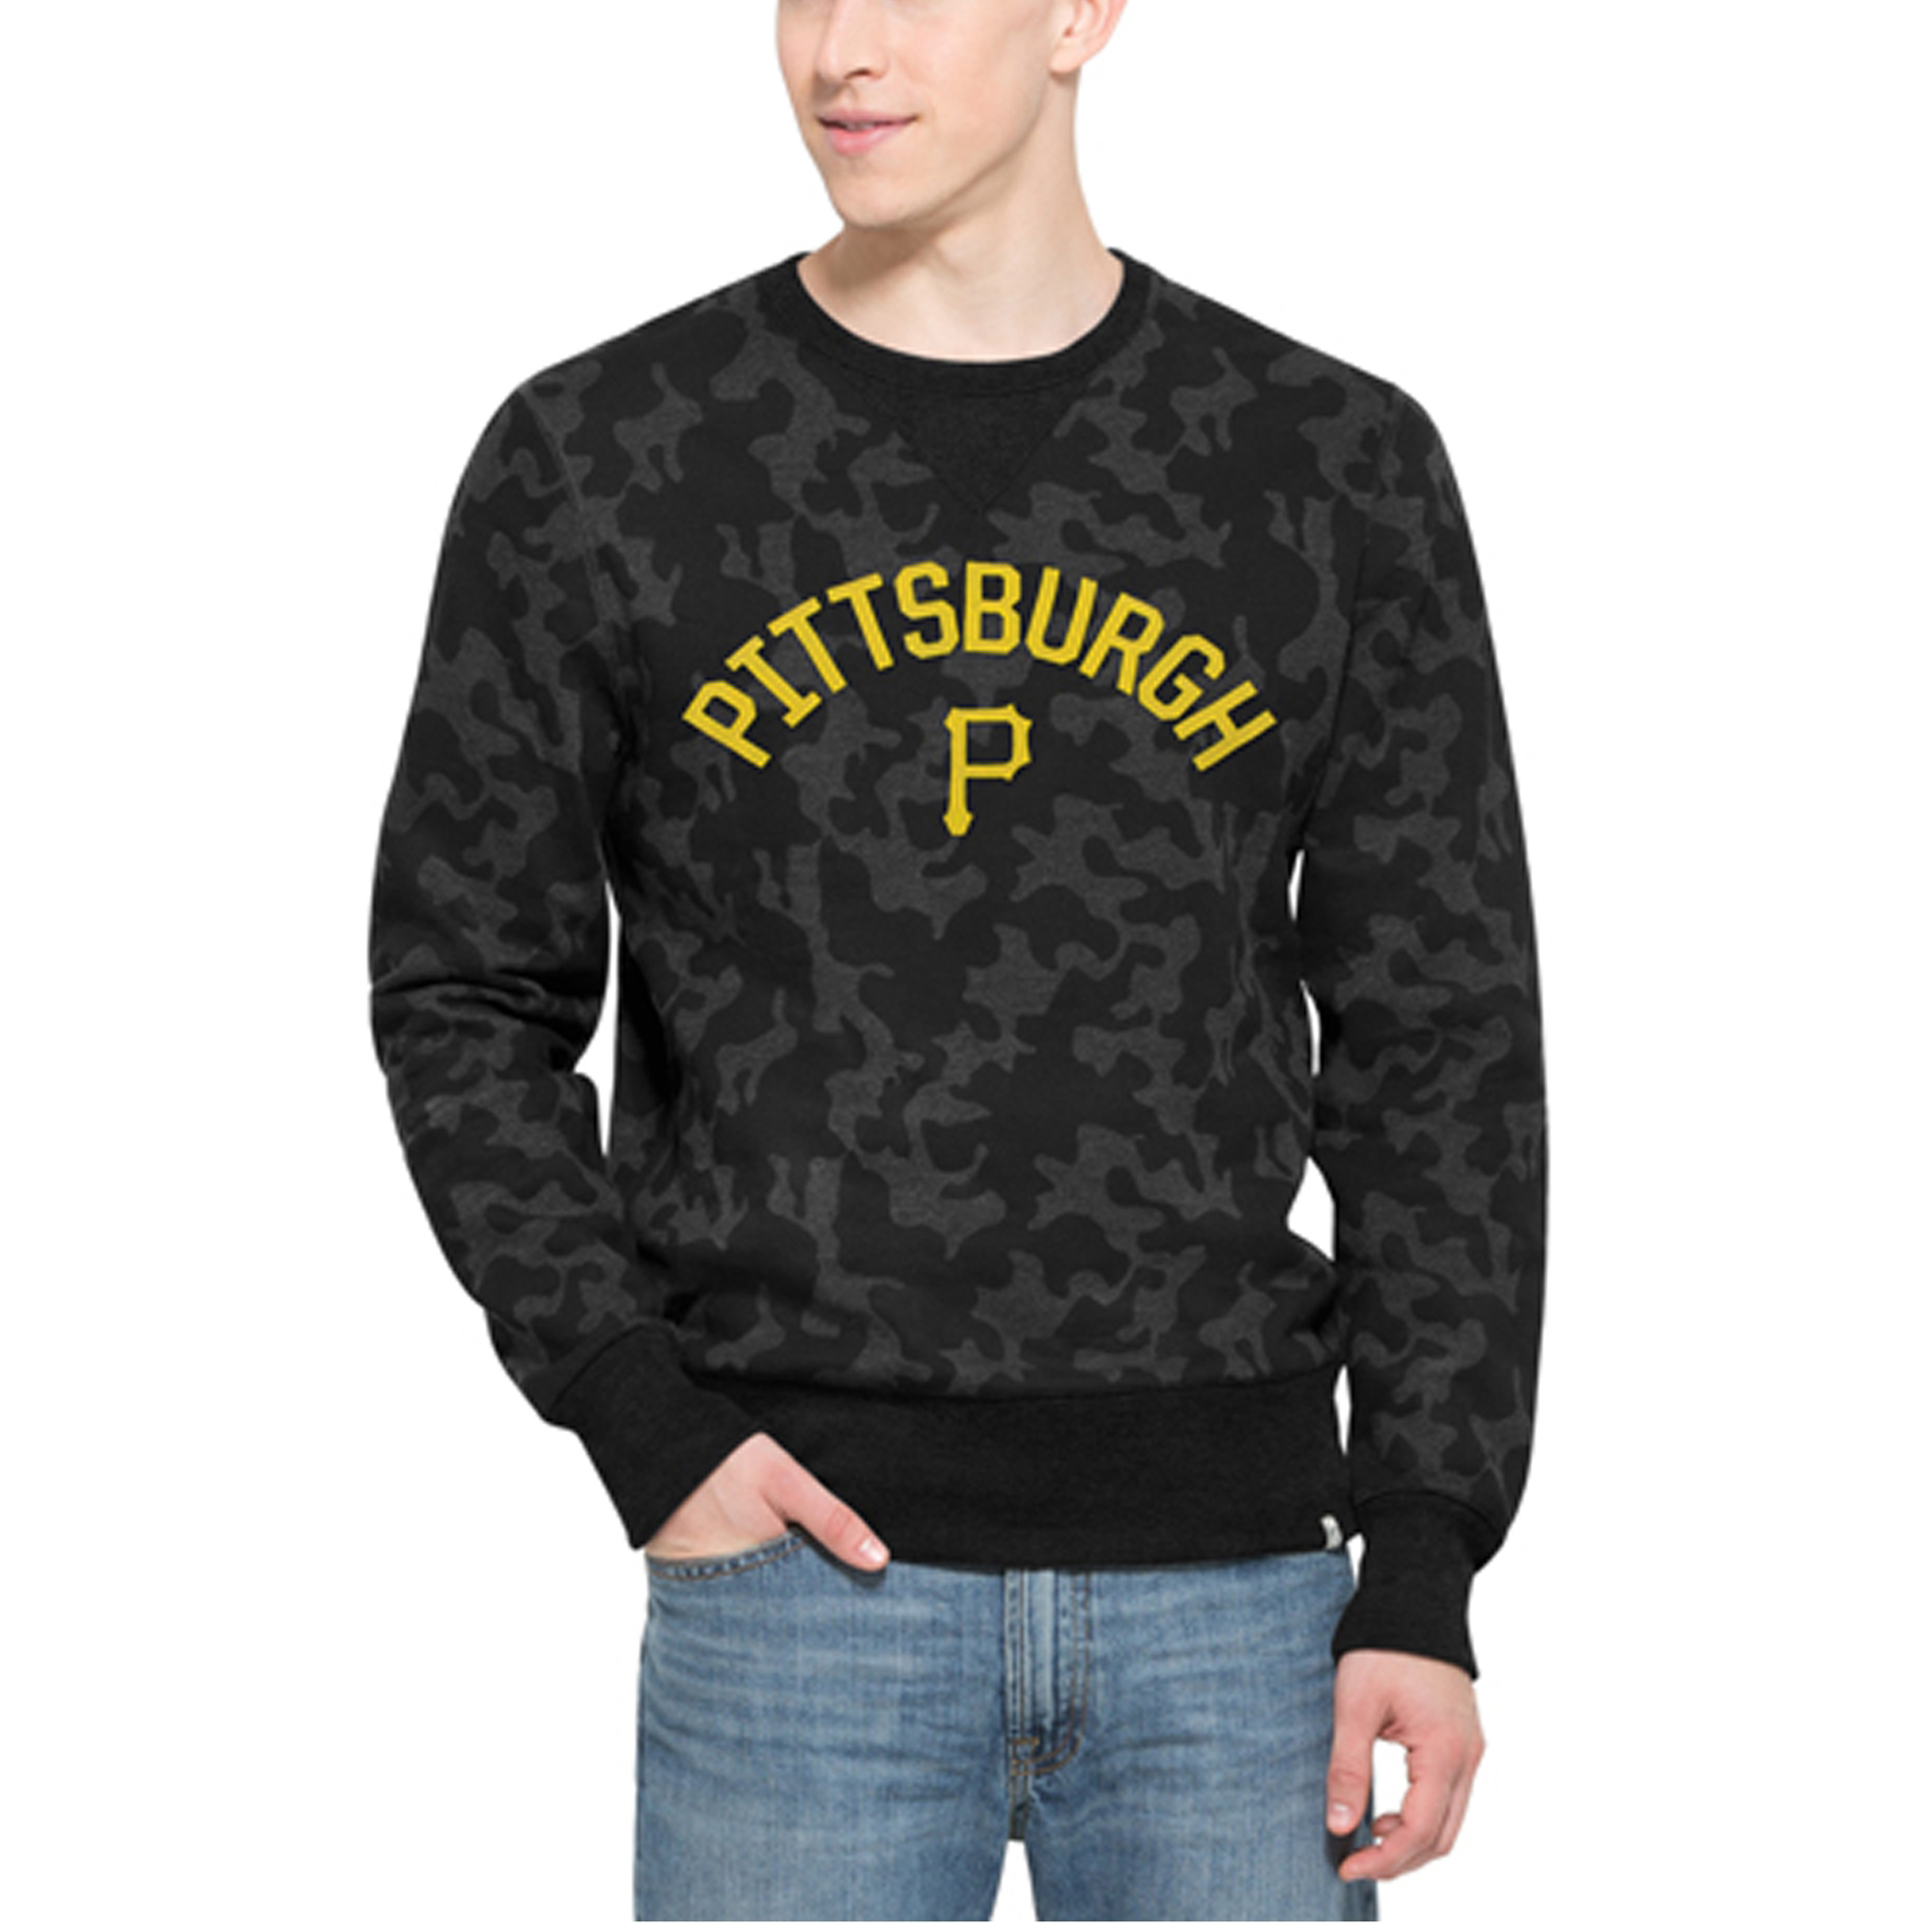 Pittsburgh Pirates '47 Brand Stealth Camo Crew Sweatshirt - Black